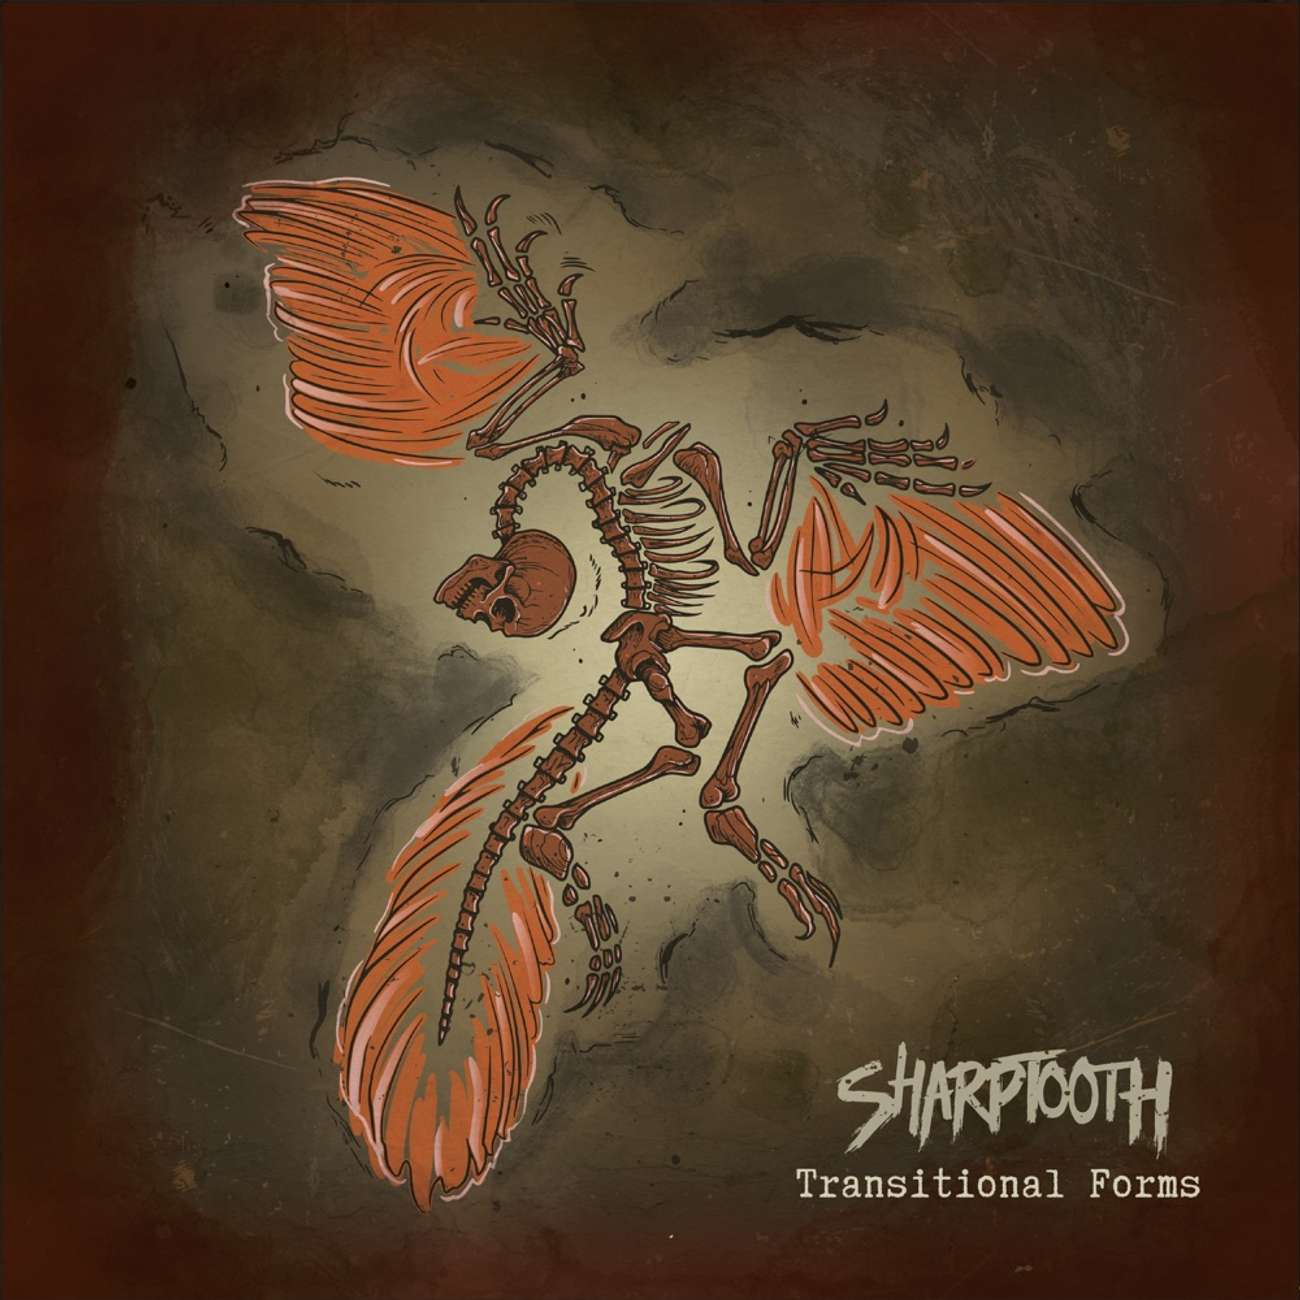 Transitional Forms by Sharptooth